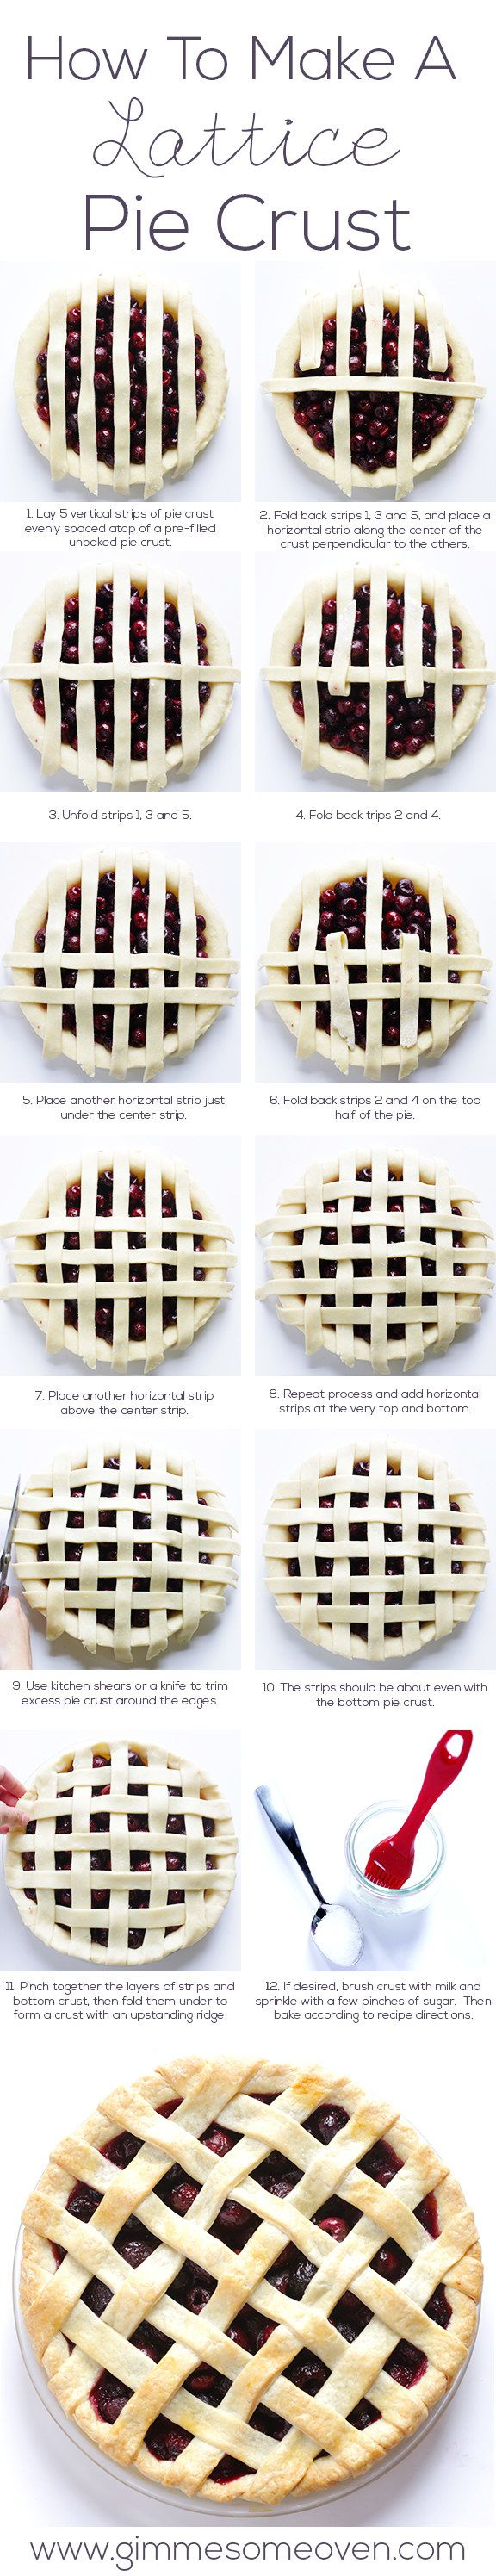 For the perfect lattice. | 27 Lifesaving Charts For Anyone Who Loves Baking